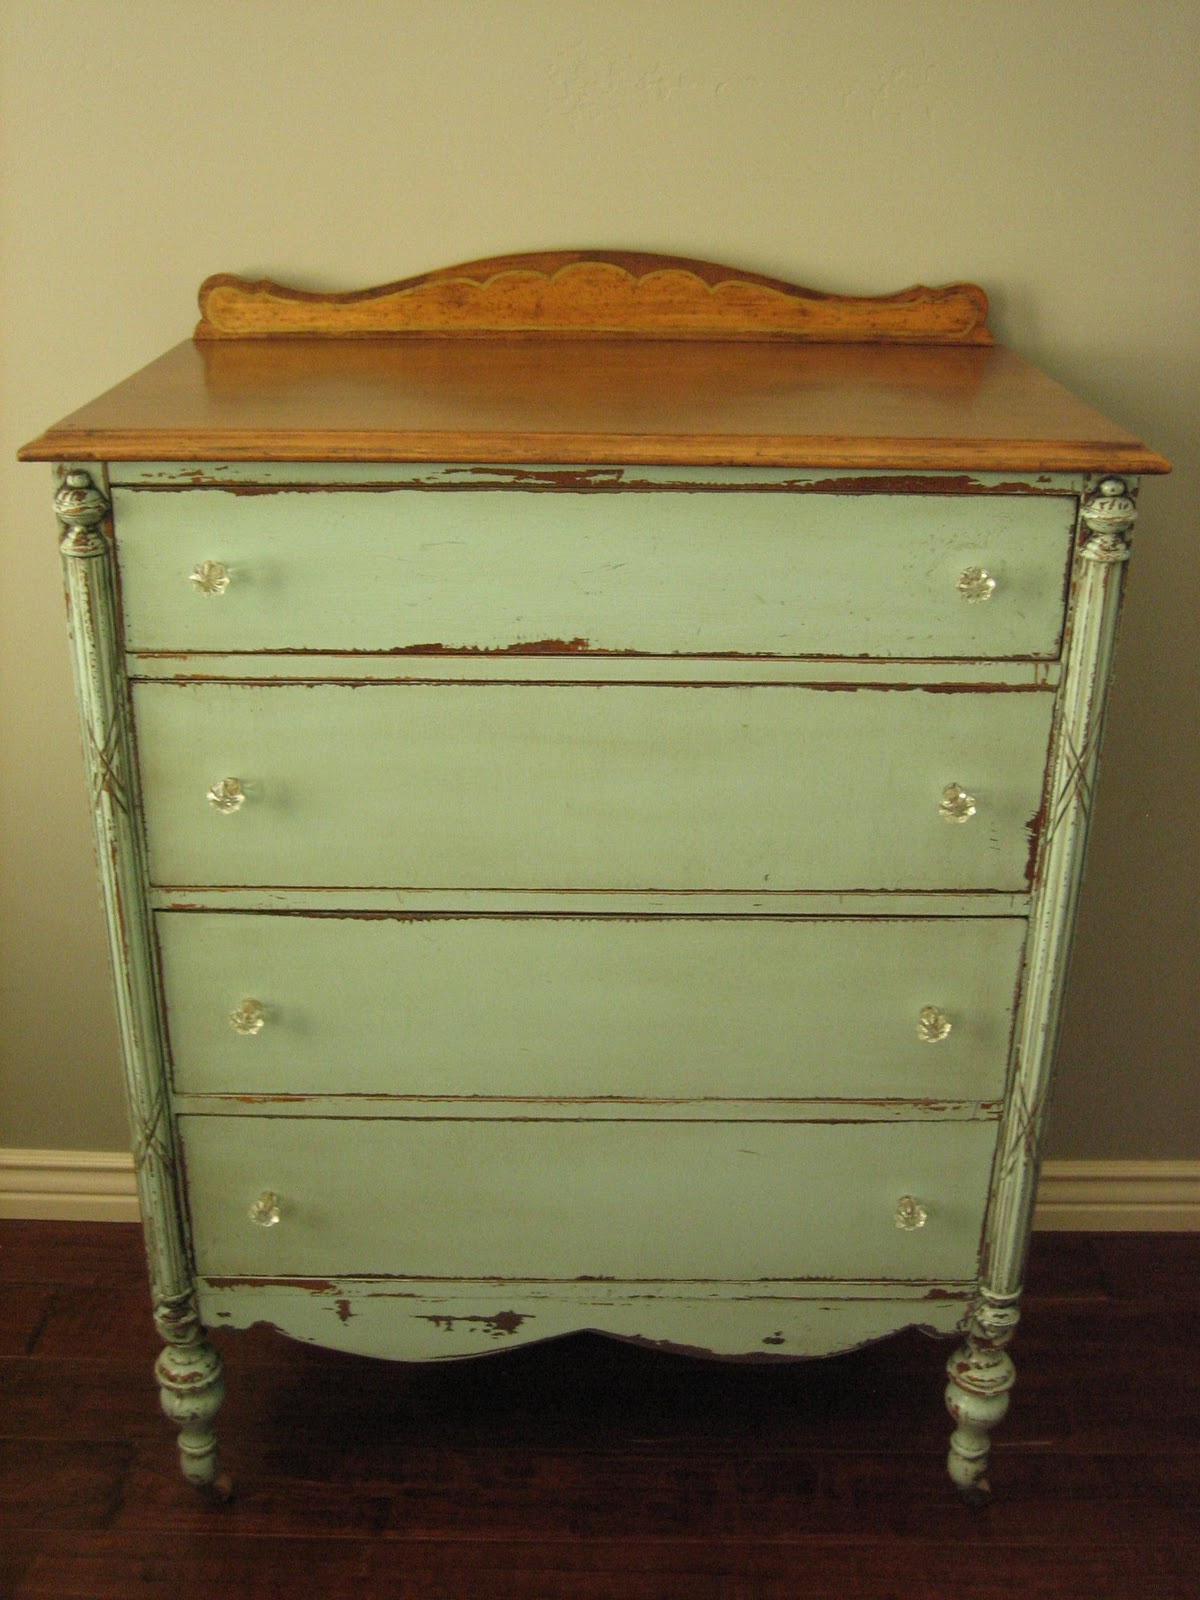 Old Style Distressed Shabby Chic Furniture On Pinterest Shabby Chic Jewelry Jewelry